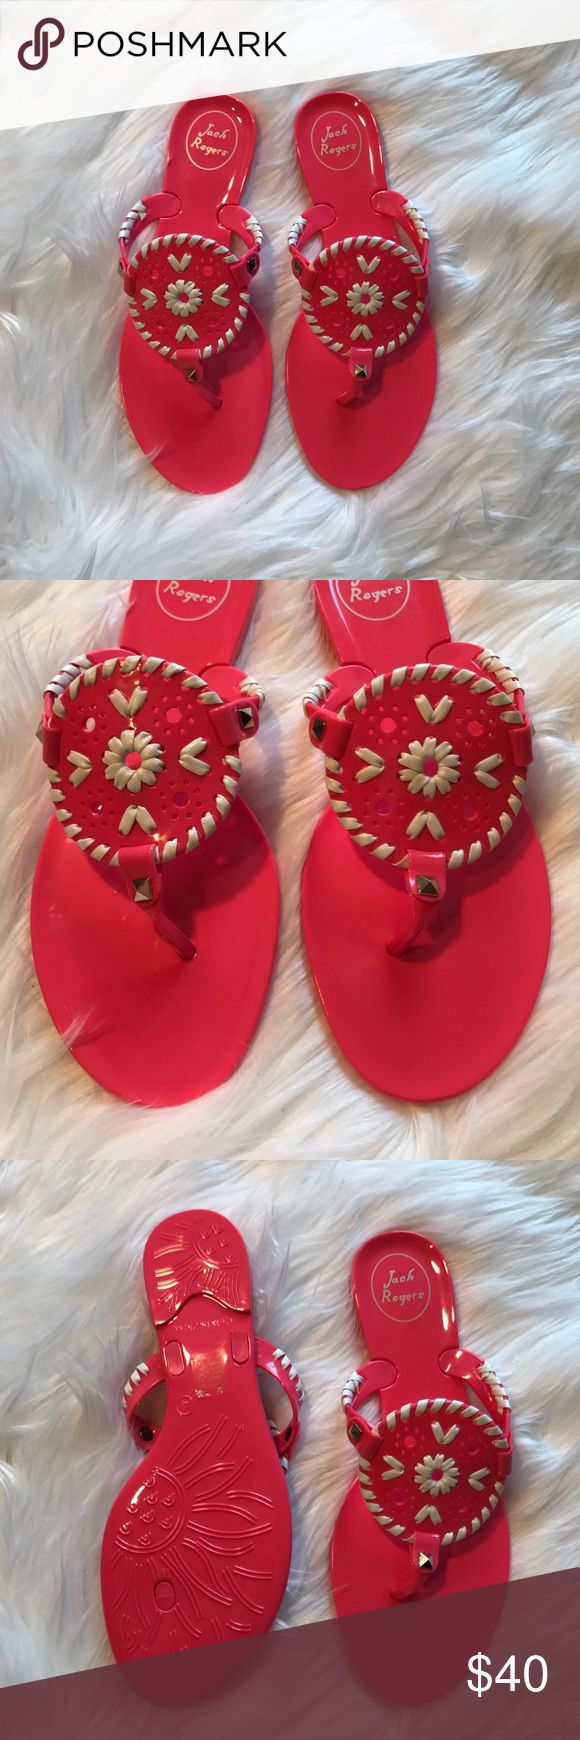 • Jack Rogers • Georgica Pink Jelly Sandals - Jack Rogers - Georgica Jelly Sandals - Size 4 (fits a women's 7)  - Pink and white - New without Box Jack Rogers Shoes Sandals